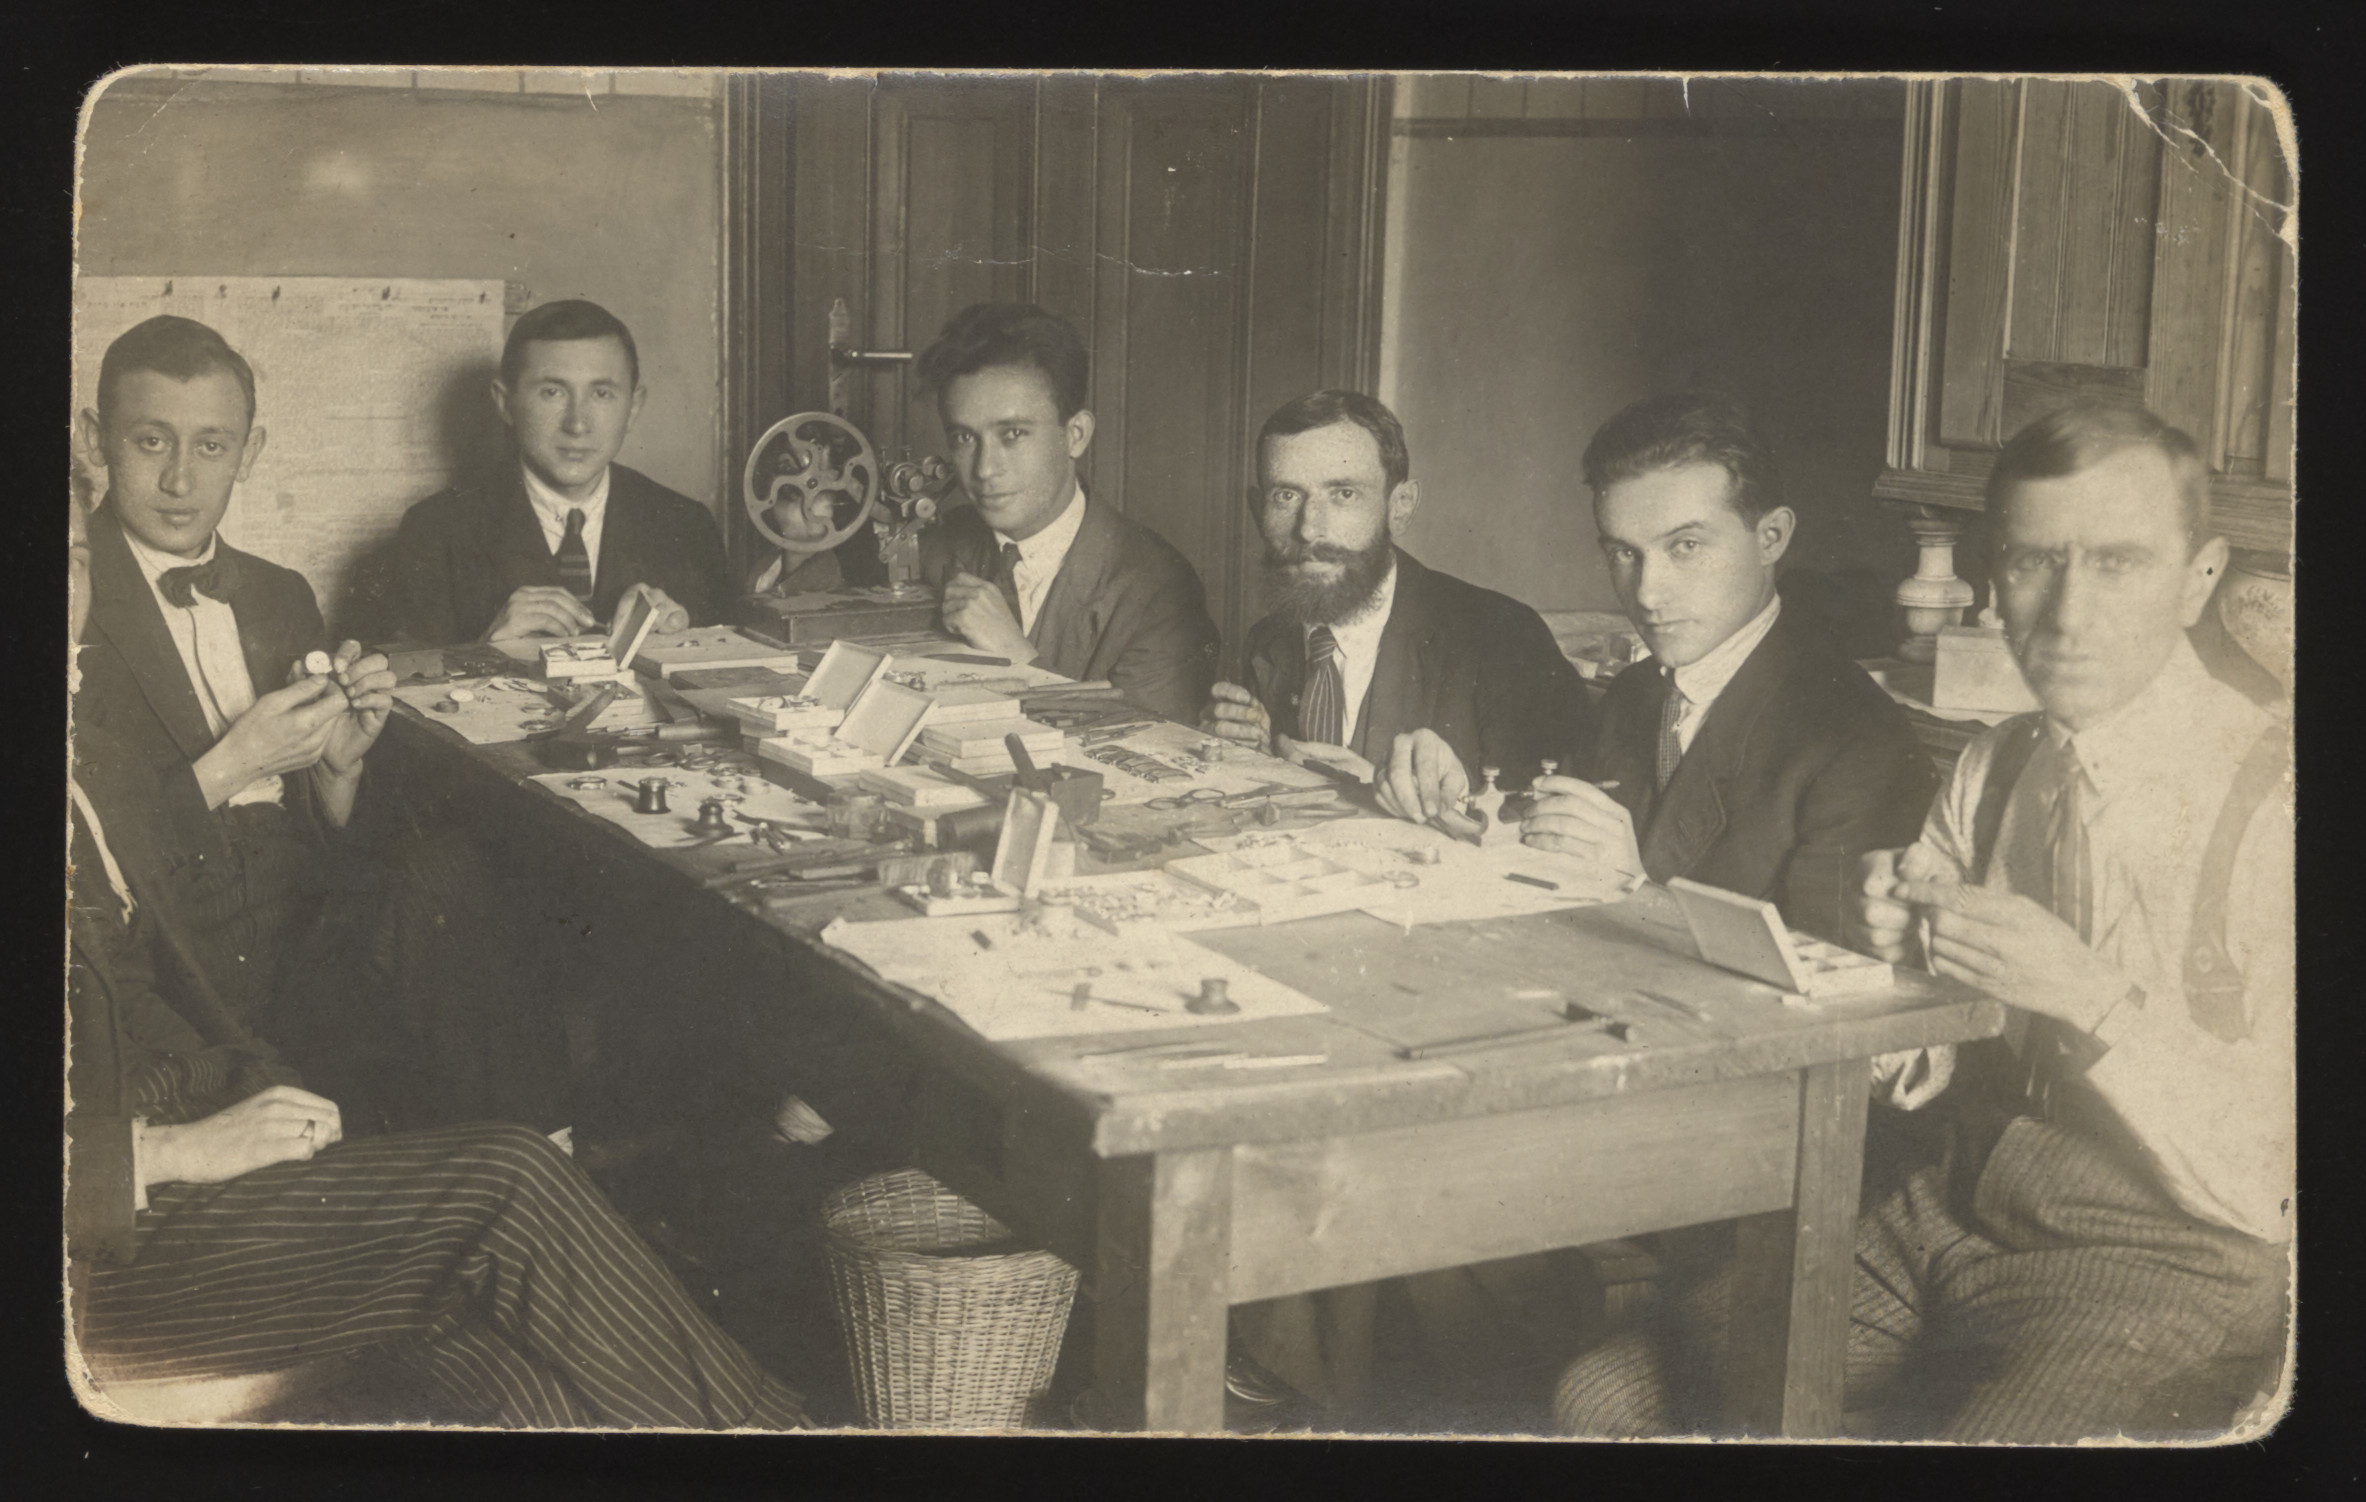 Jewish workers assemble watches in a workshop in Poland.  Among those pictured are Samuel Jeruchim and his brother-in-law David Szpiro.